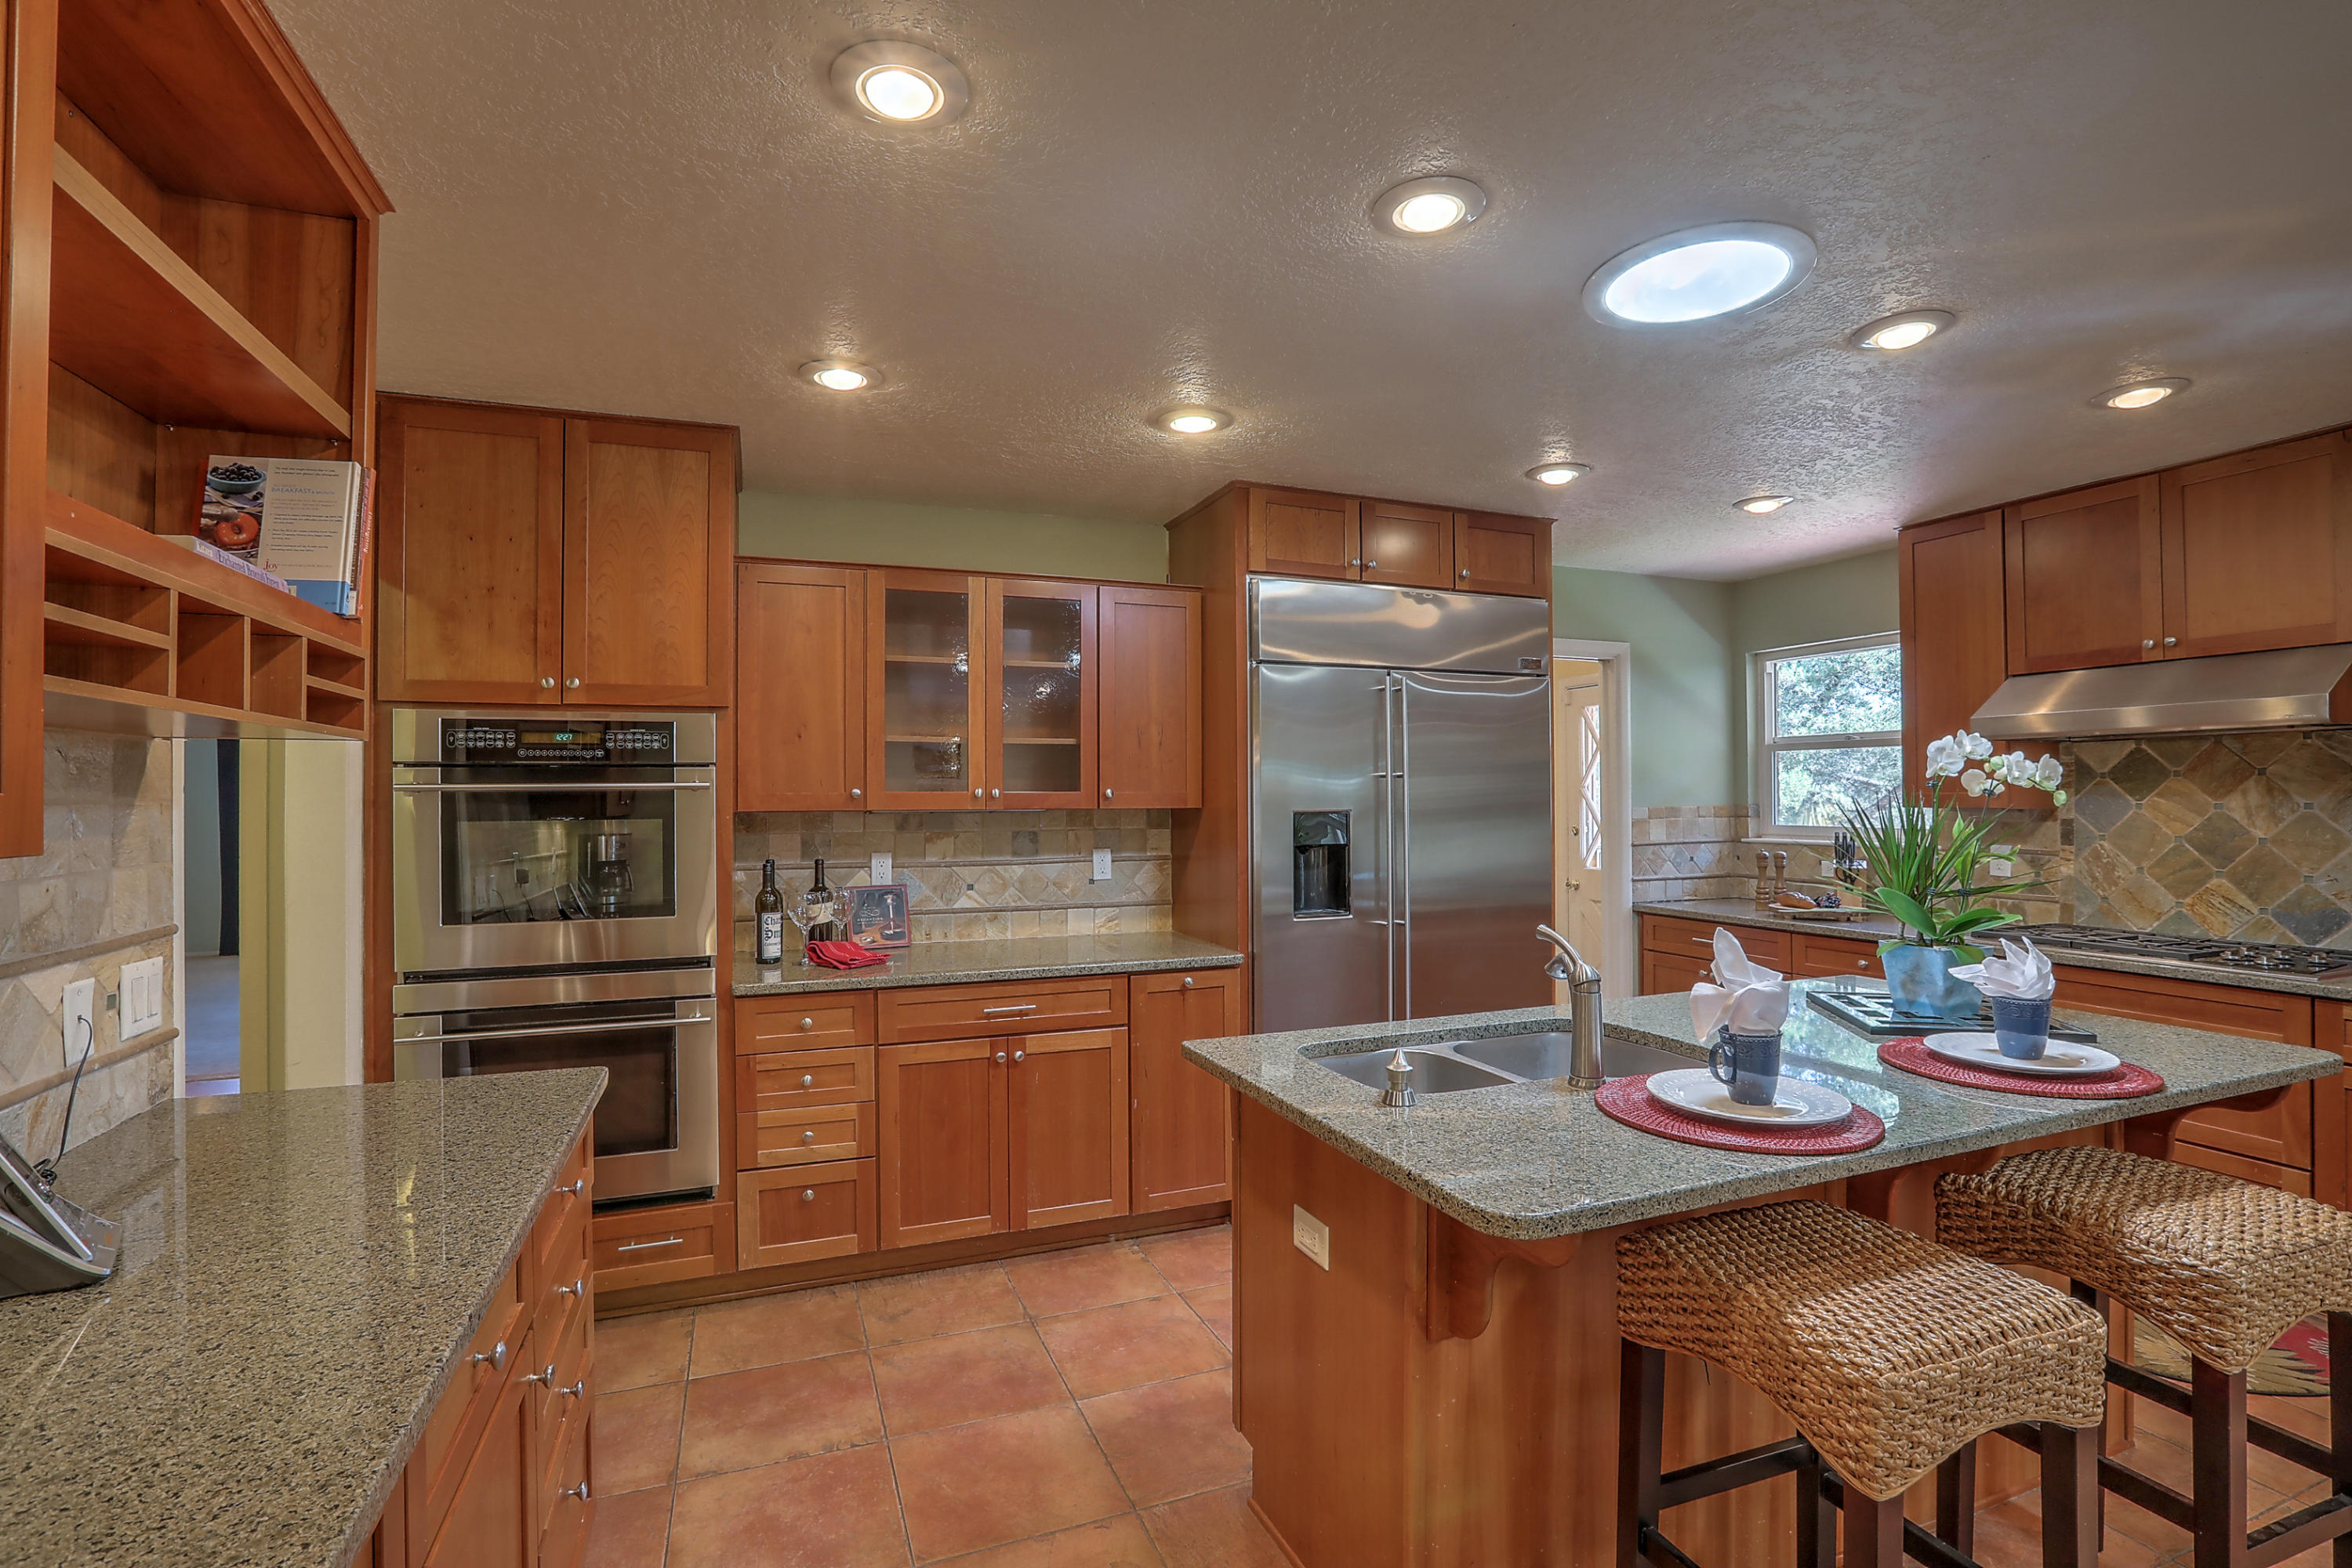 PRICE ADJUSTMENT ! Exceptional all brick family home in the Ridgecrest area featuring 6 bdrms, 3 baths. Ideal for an extended family, in-laws, guest rm, or home office. Remodeled kitchen w/ cherry cabinets, granite counter tops, Wolf cook-top stove , double ovens. walk in pantry. Lg family room and living room both with custom fireplaces and brick floors. Master suite is complete with sitting area, built-in bookshelves, wood burning fireplace, walk-in closet and access to a private patio. Don't miss the basement with plush carpet, extra storage and perfect area for a game room, media room or just a room to escape. Picture perfect back yard with large covered patio and mountain views. This is a fantastic family home in a wonderful location close to hospitals, downtown and easy access to  I-